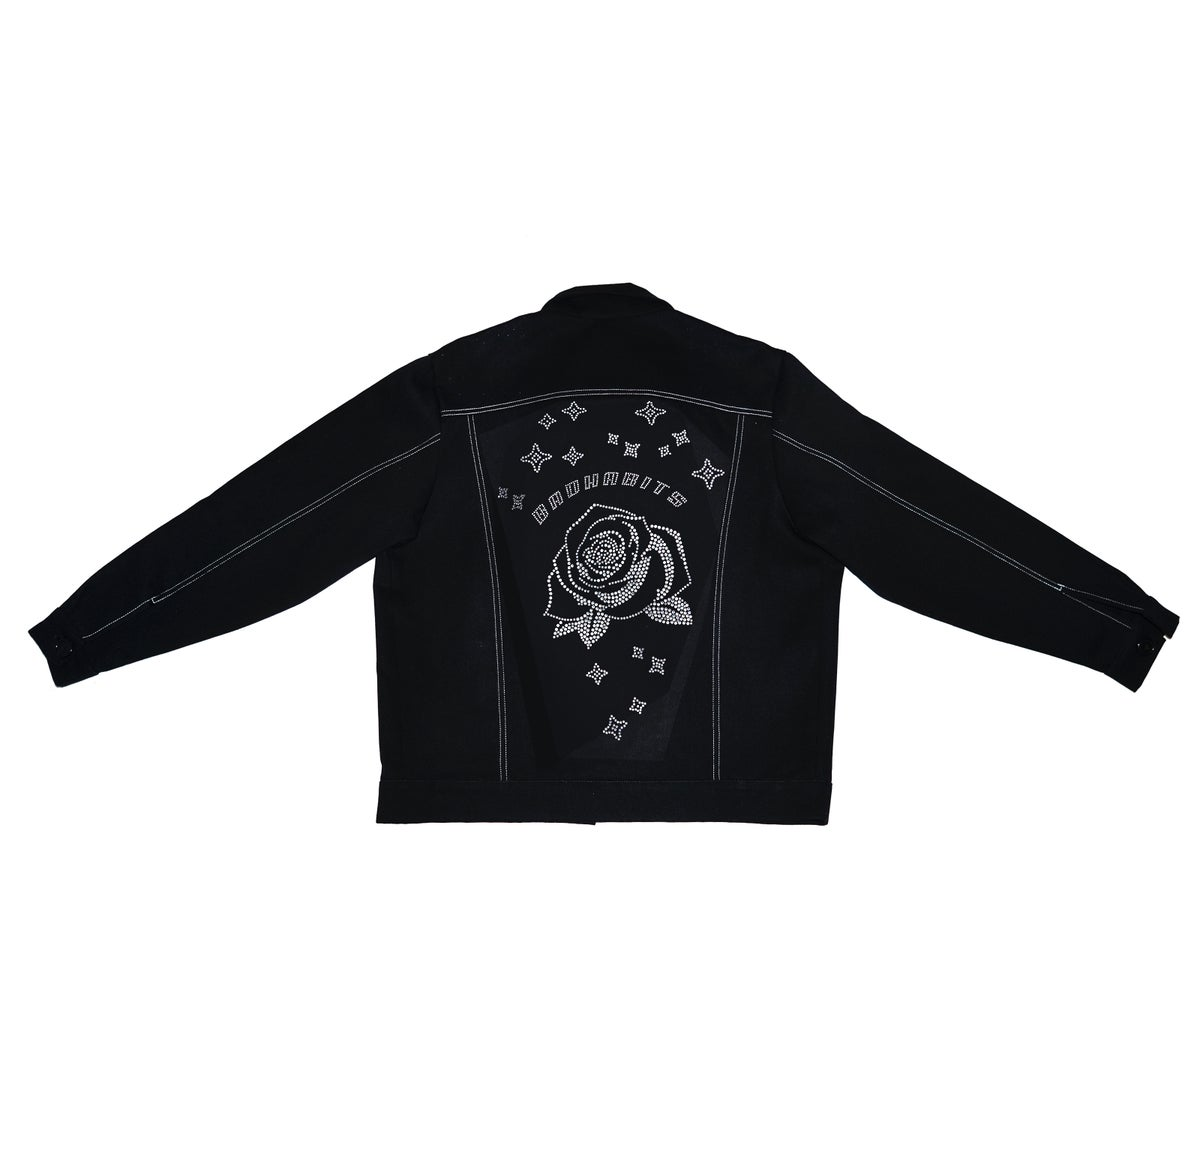 Image of S€cR€T De$iR€ Crystal Rose Jacket